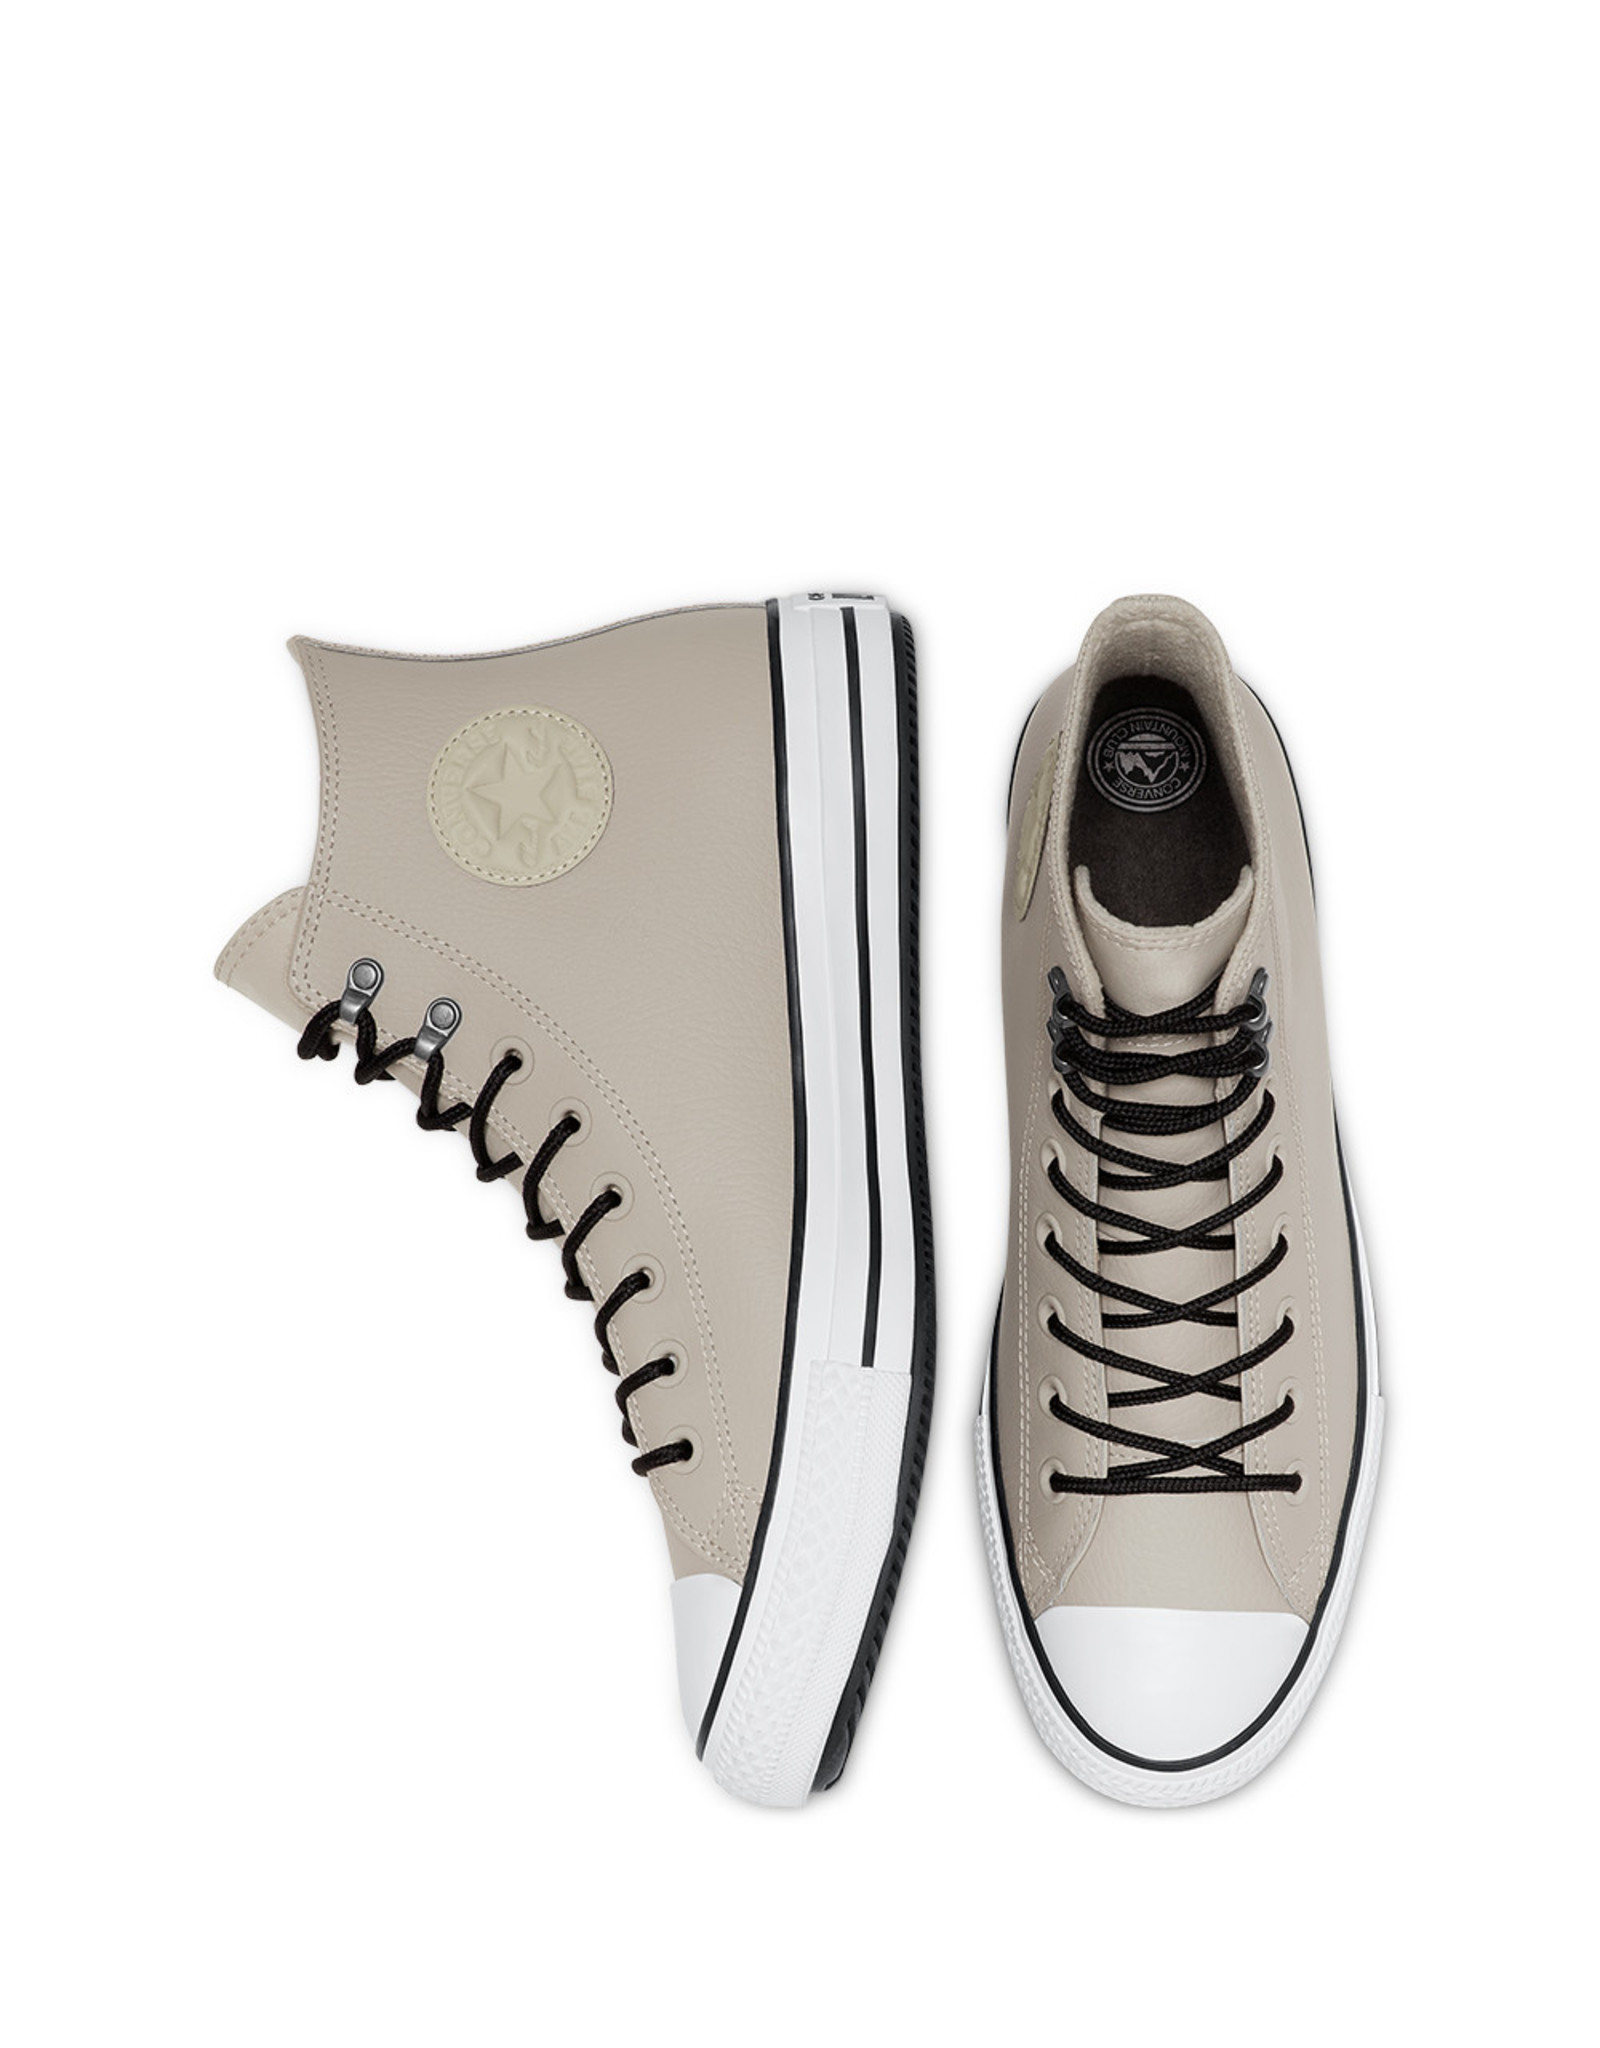 CONVERSE CHUCK TAYLOR ALL STAR WINTER HI LEATHER BIRCH BARK/WHITE/BLACK CC19BIR-166219C